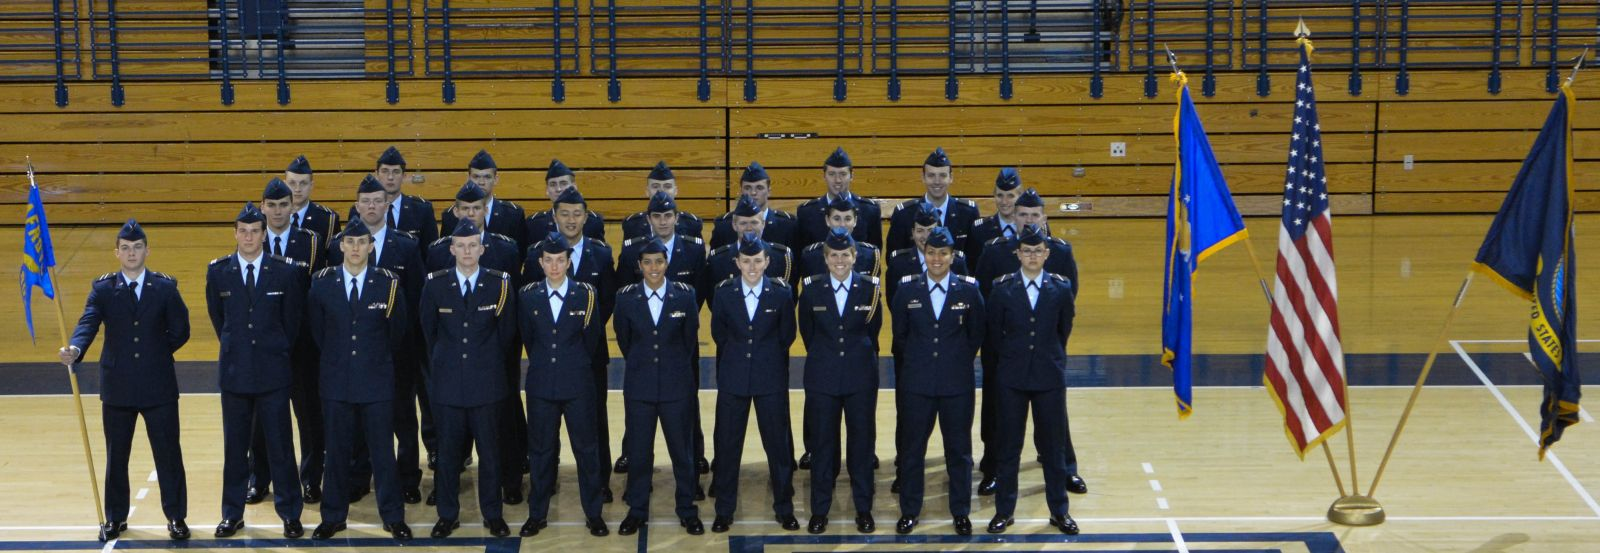 About Us. Yale University has a strong history of service to the nation and Air Force Reserve Officer Training Corps (ROTC) provides college students with